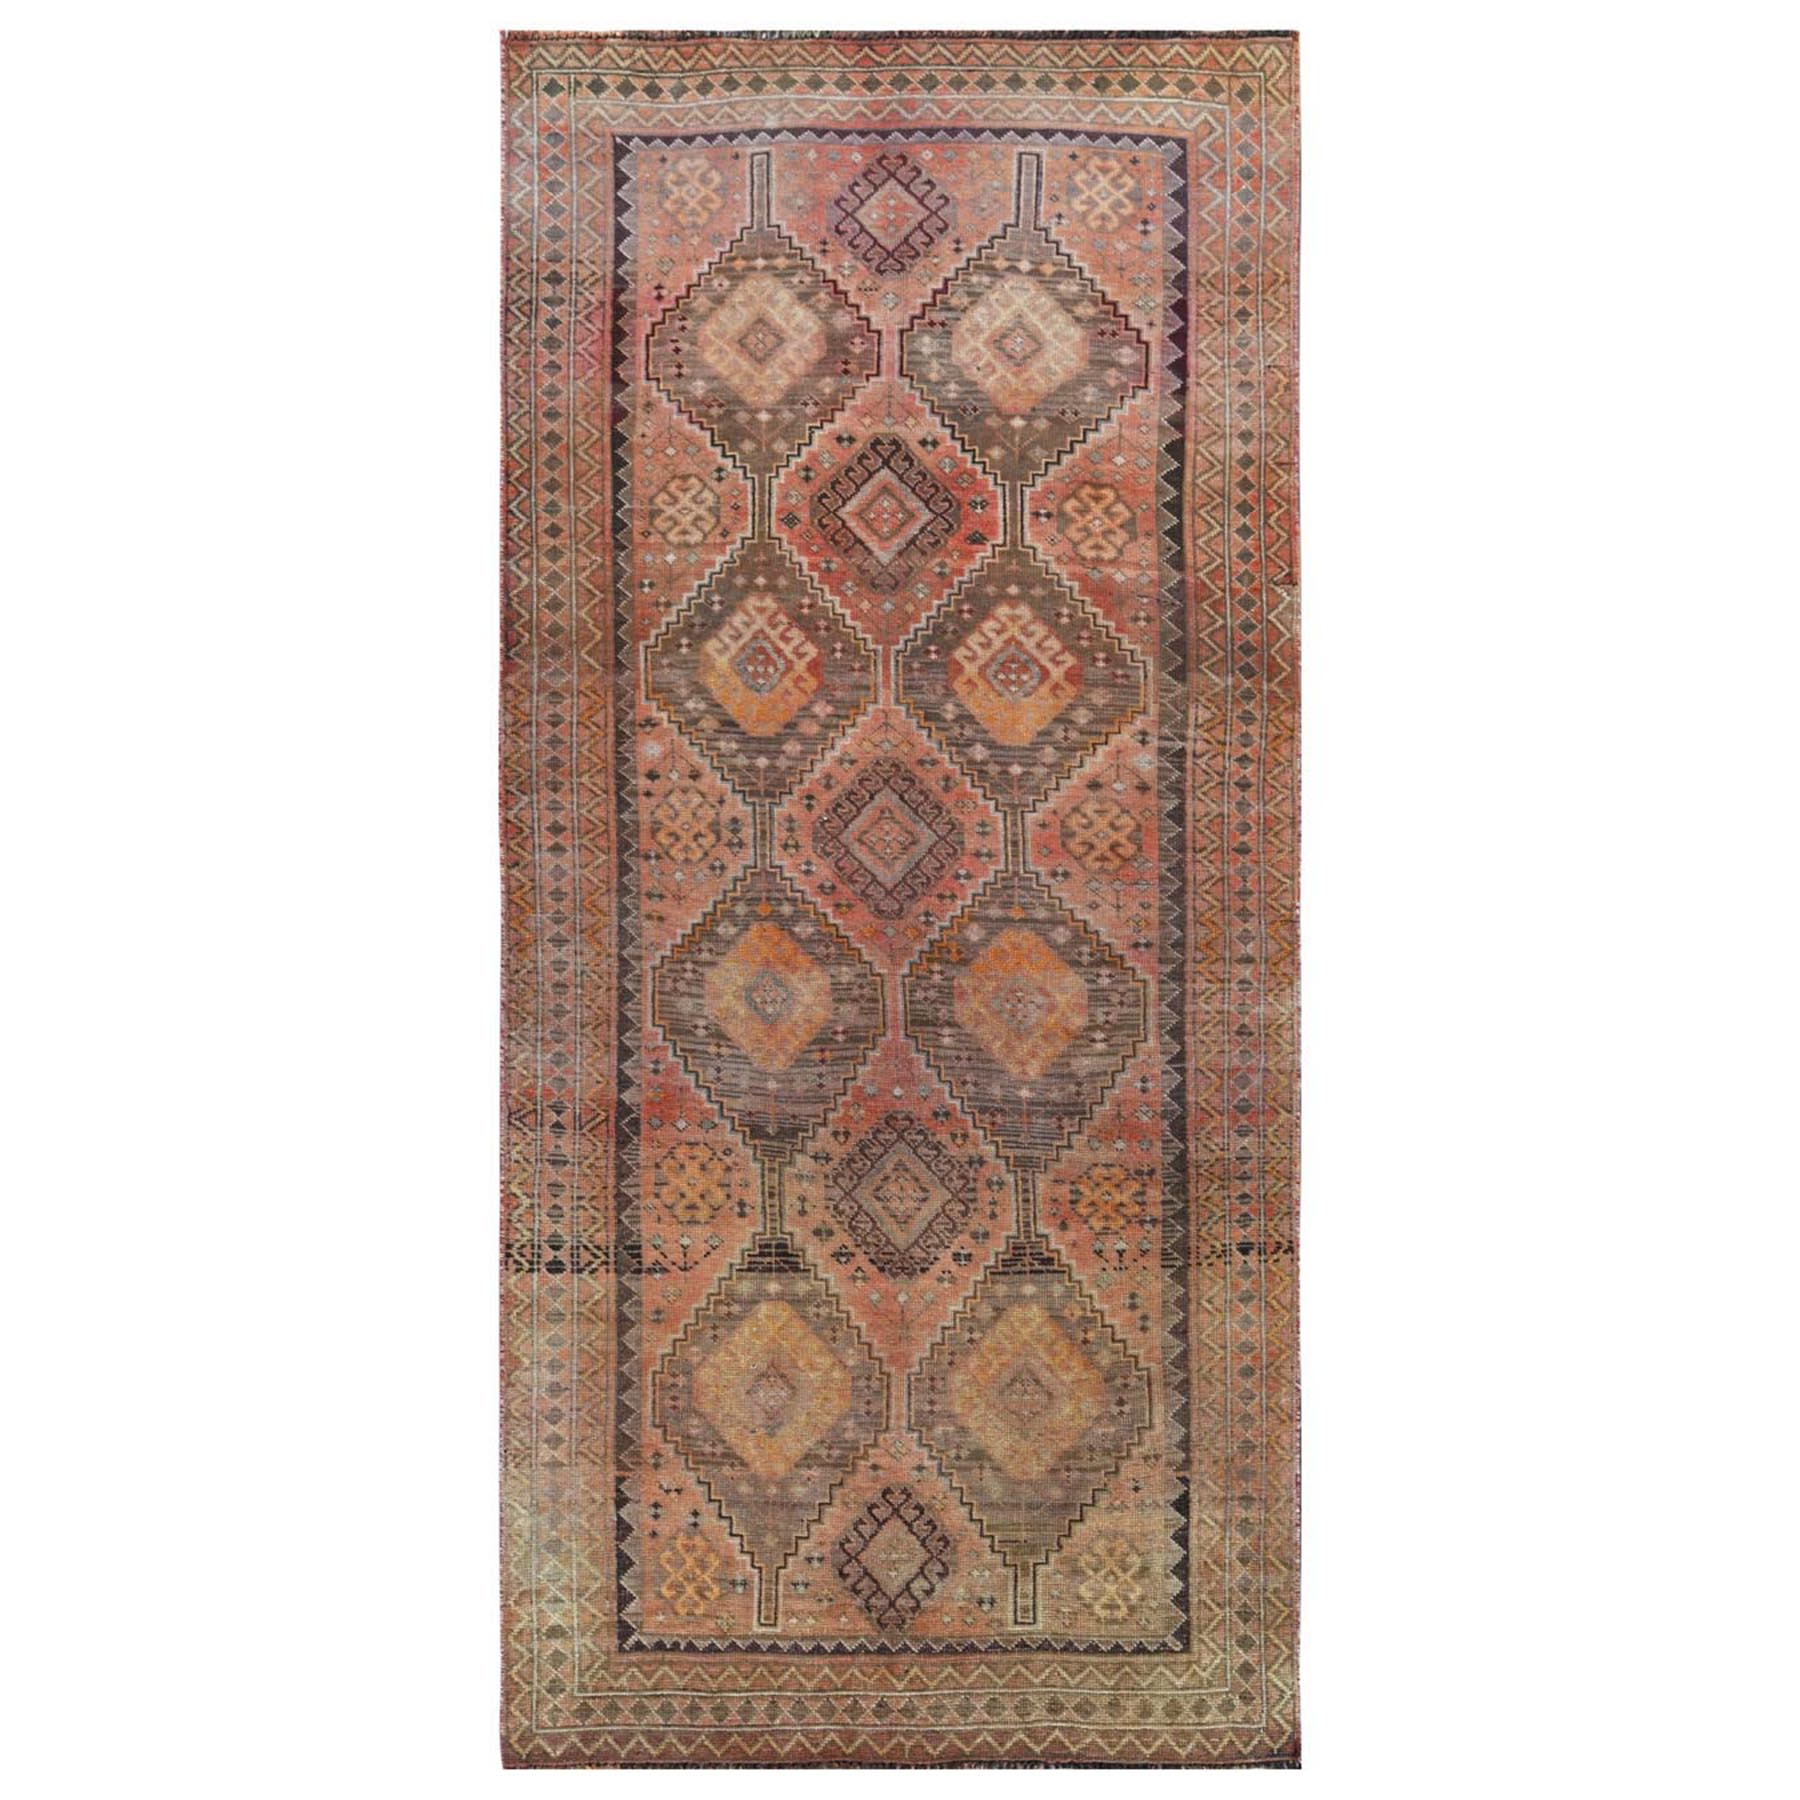 Fetneh Collection And Vintage Overdyed Collection Hand Knotted Red Rug No: 1115826